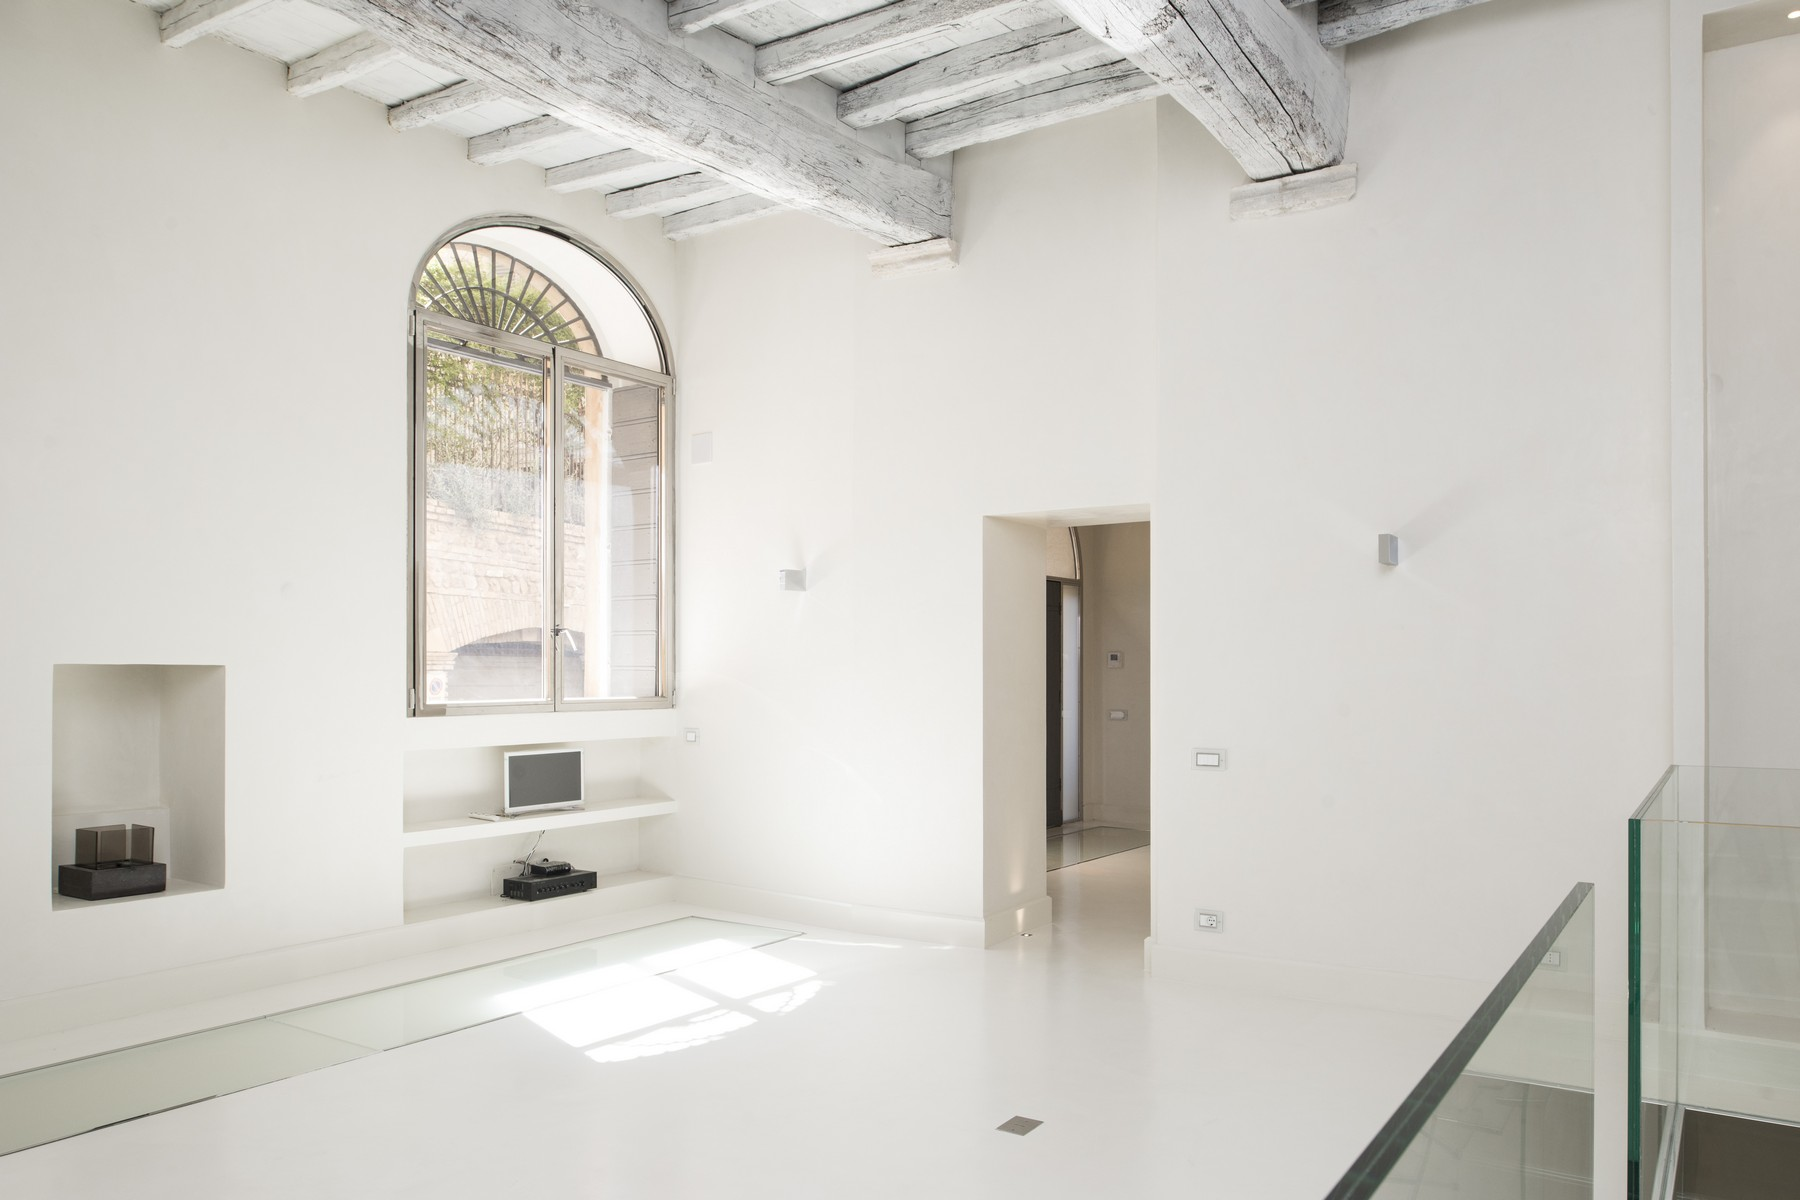 Apartamento por un Venta en Beautiful apartment a few steps from Piazza Navona Vicolo Domizio Rome, Roma 00186 Italia